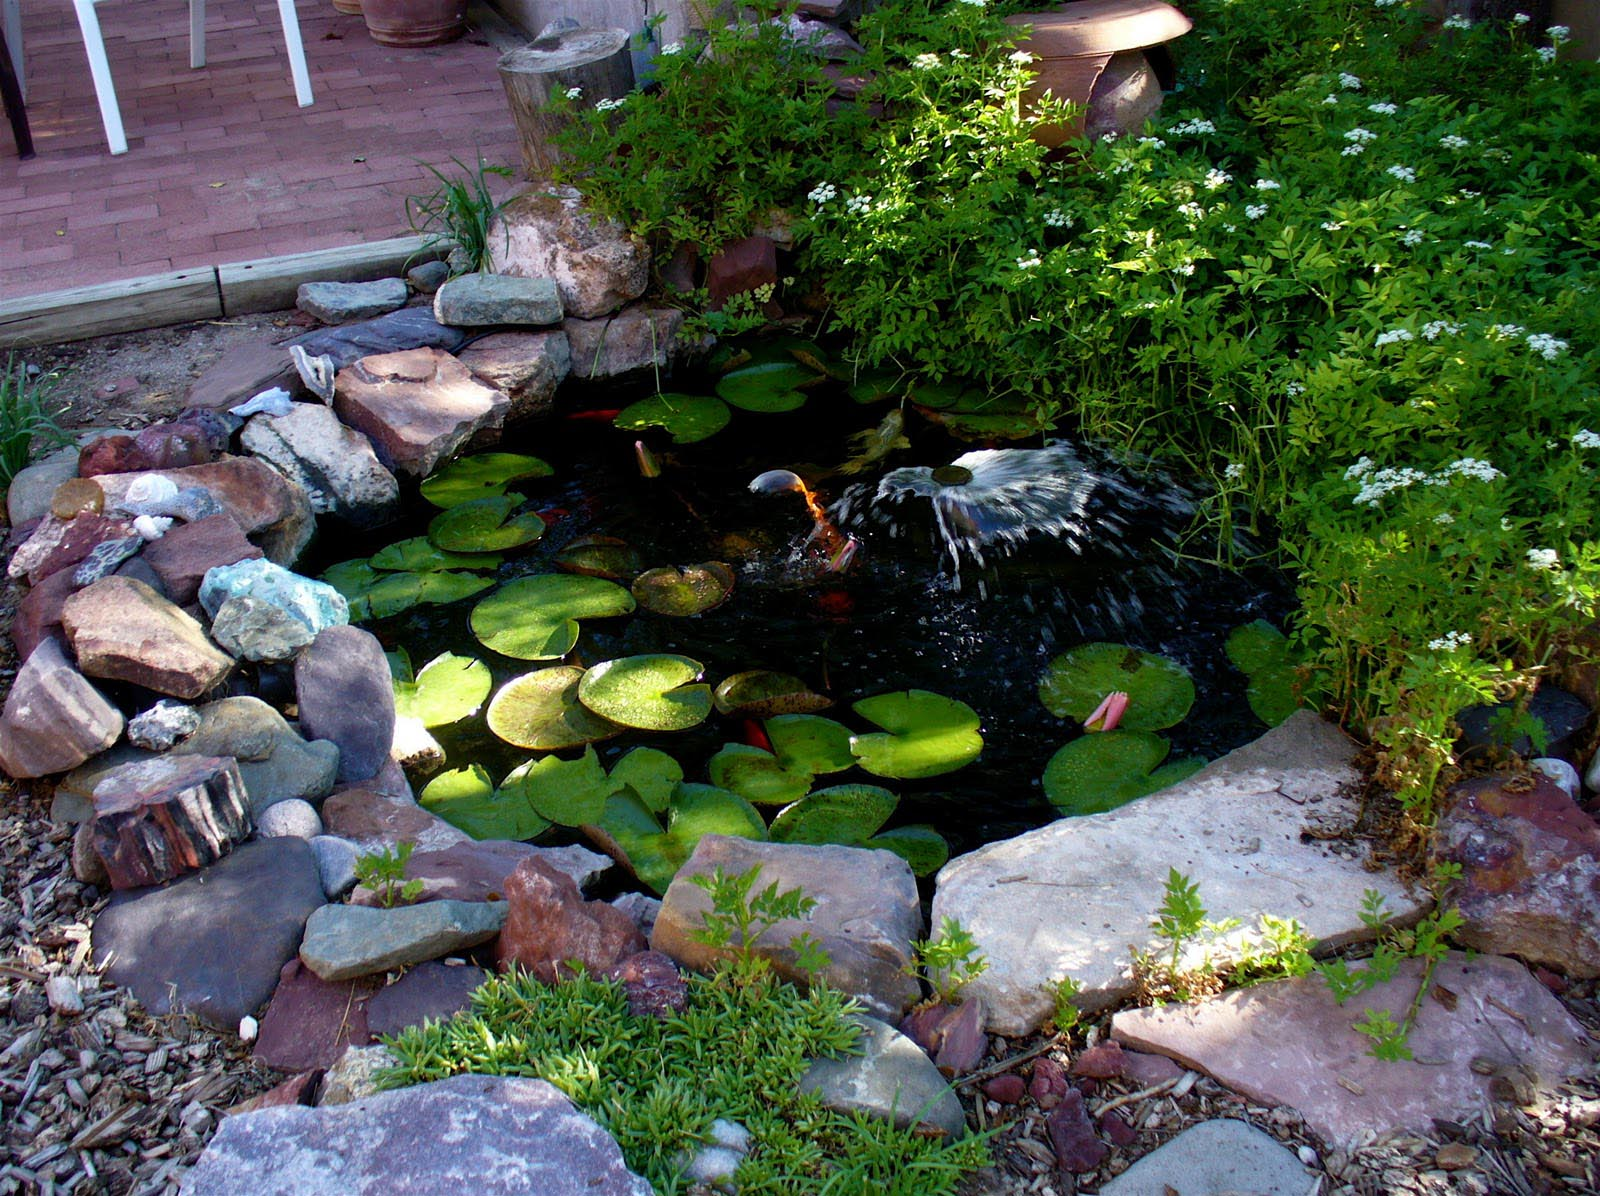 Garden fish pond ideas backyard design ideas for Garden ponds designs pictures